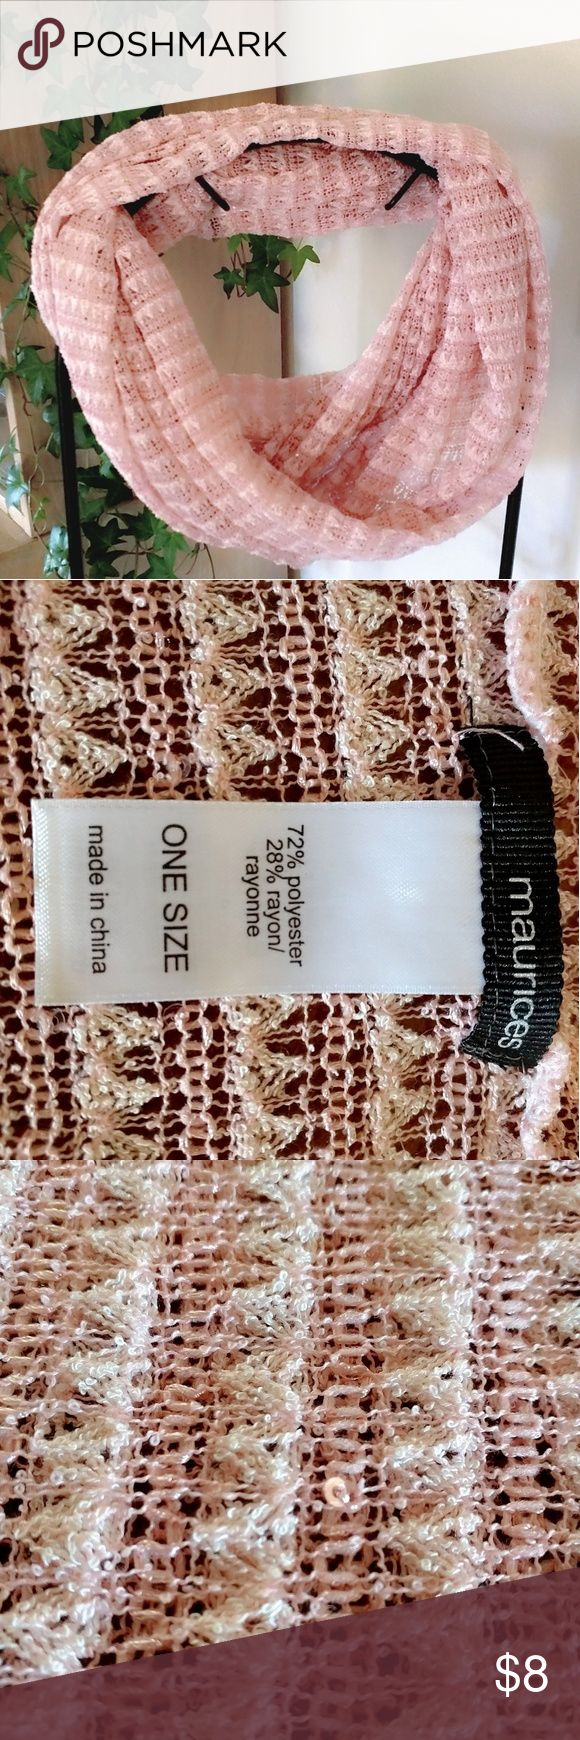 Spotted while shopping on Poshmark: Maurices Pink Knit Infinity Scarf! #poshmark #fashion #shopping #style #Maurices #Accessories